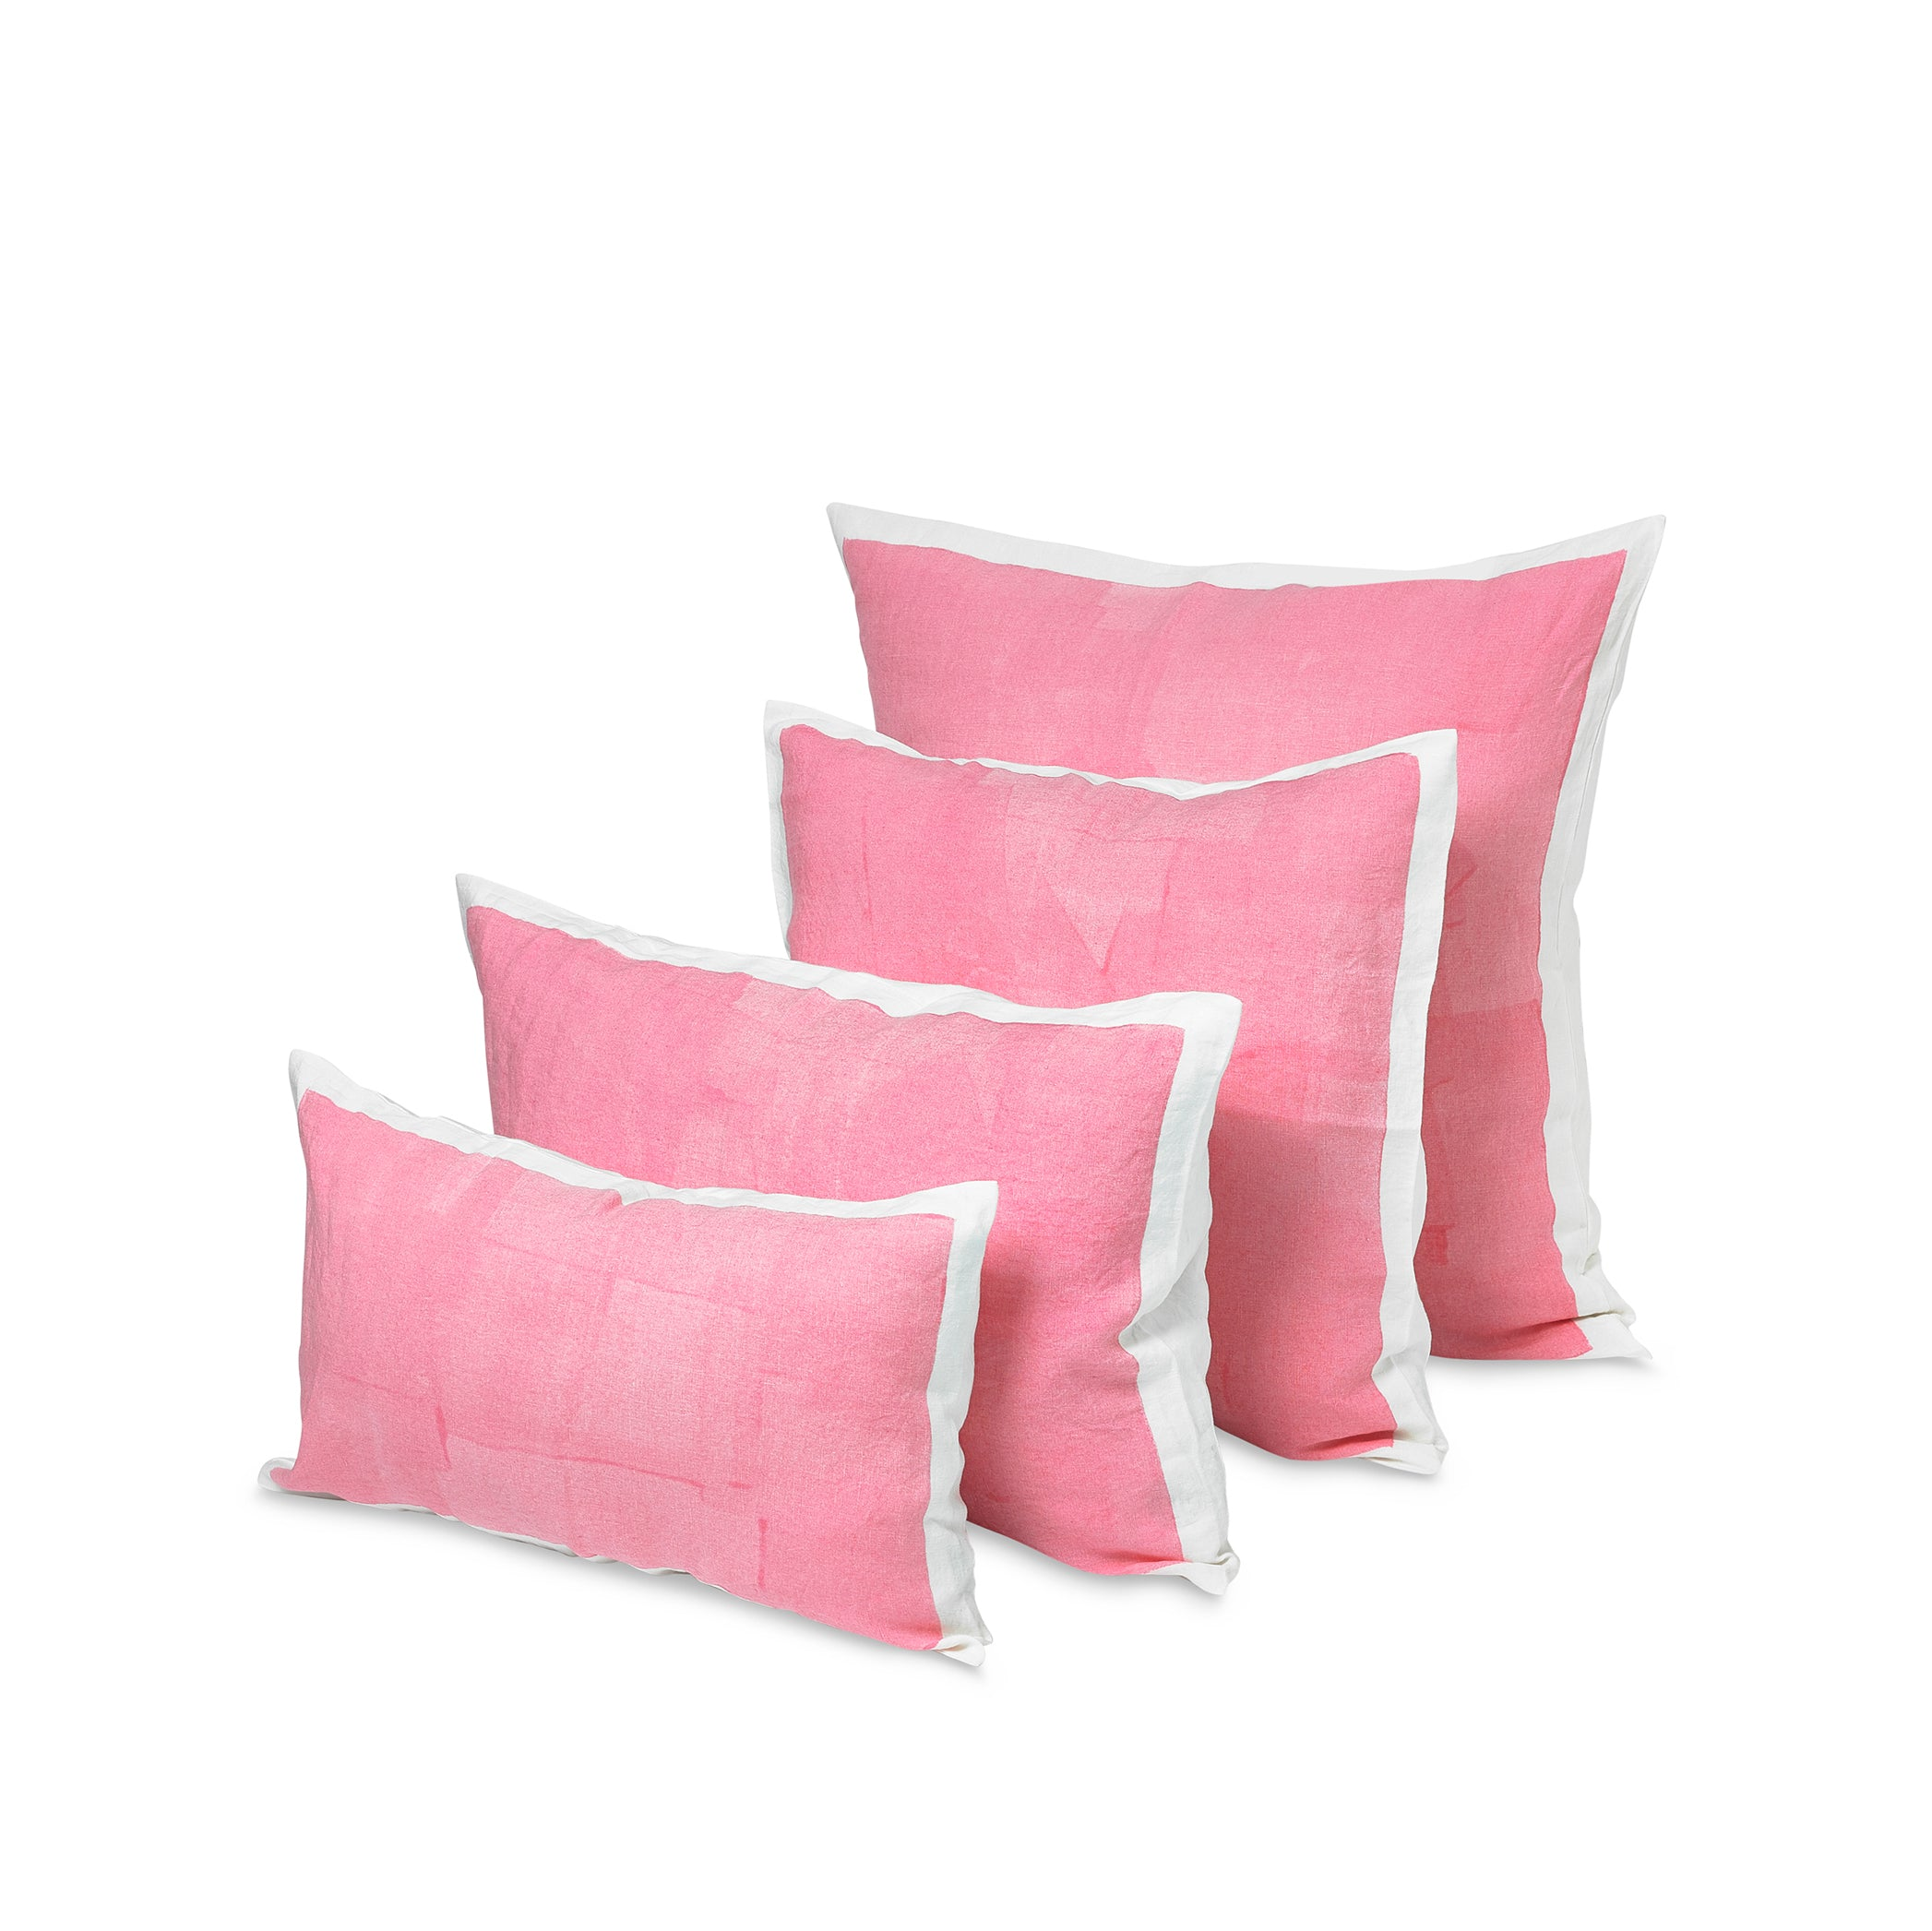 Hand Painted Linen Cushion in Rose Pink, 60cm x 60cm